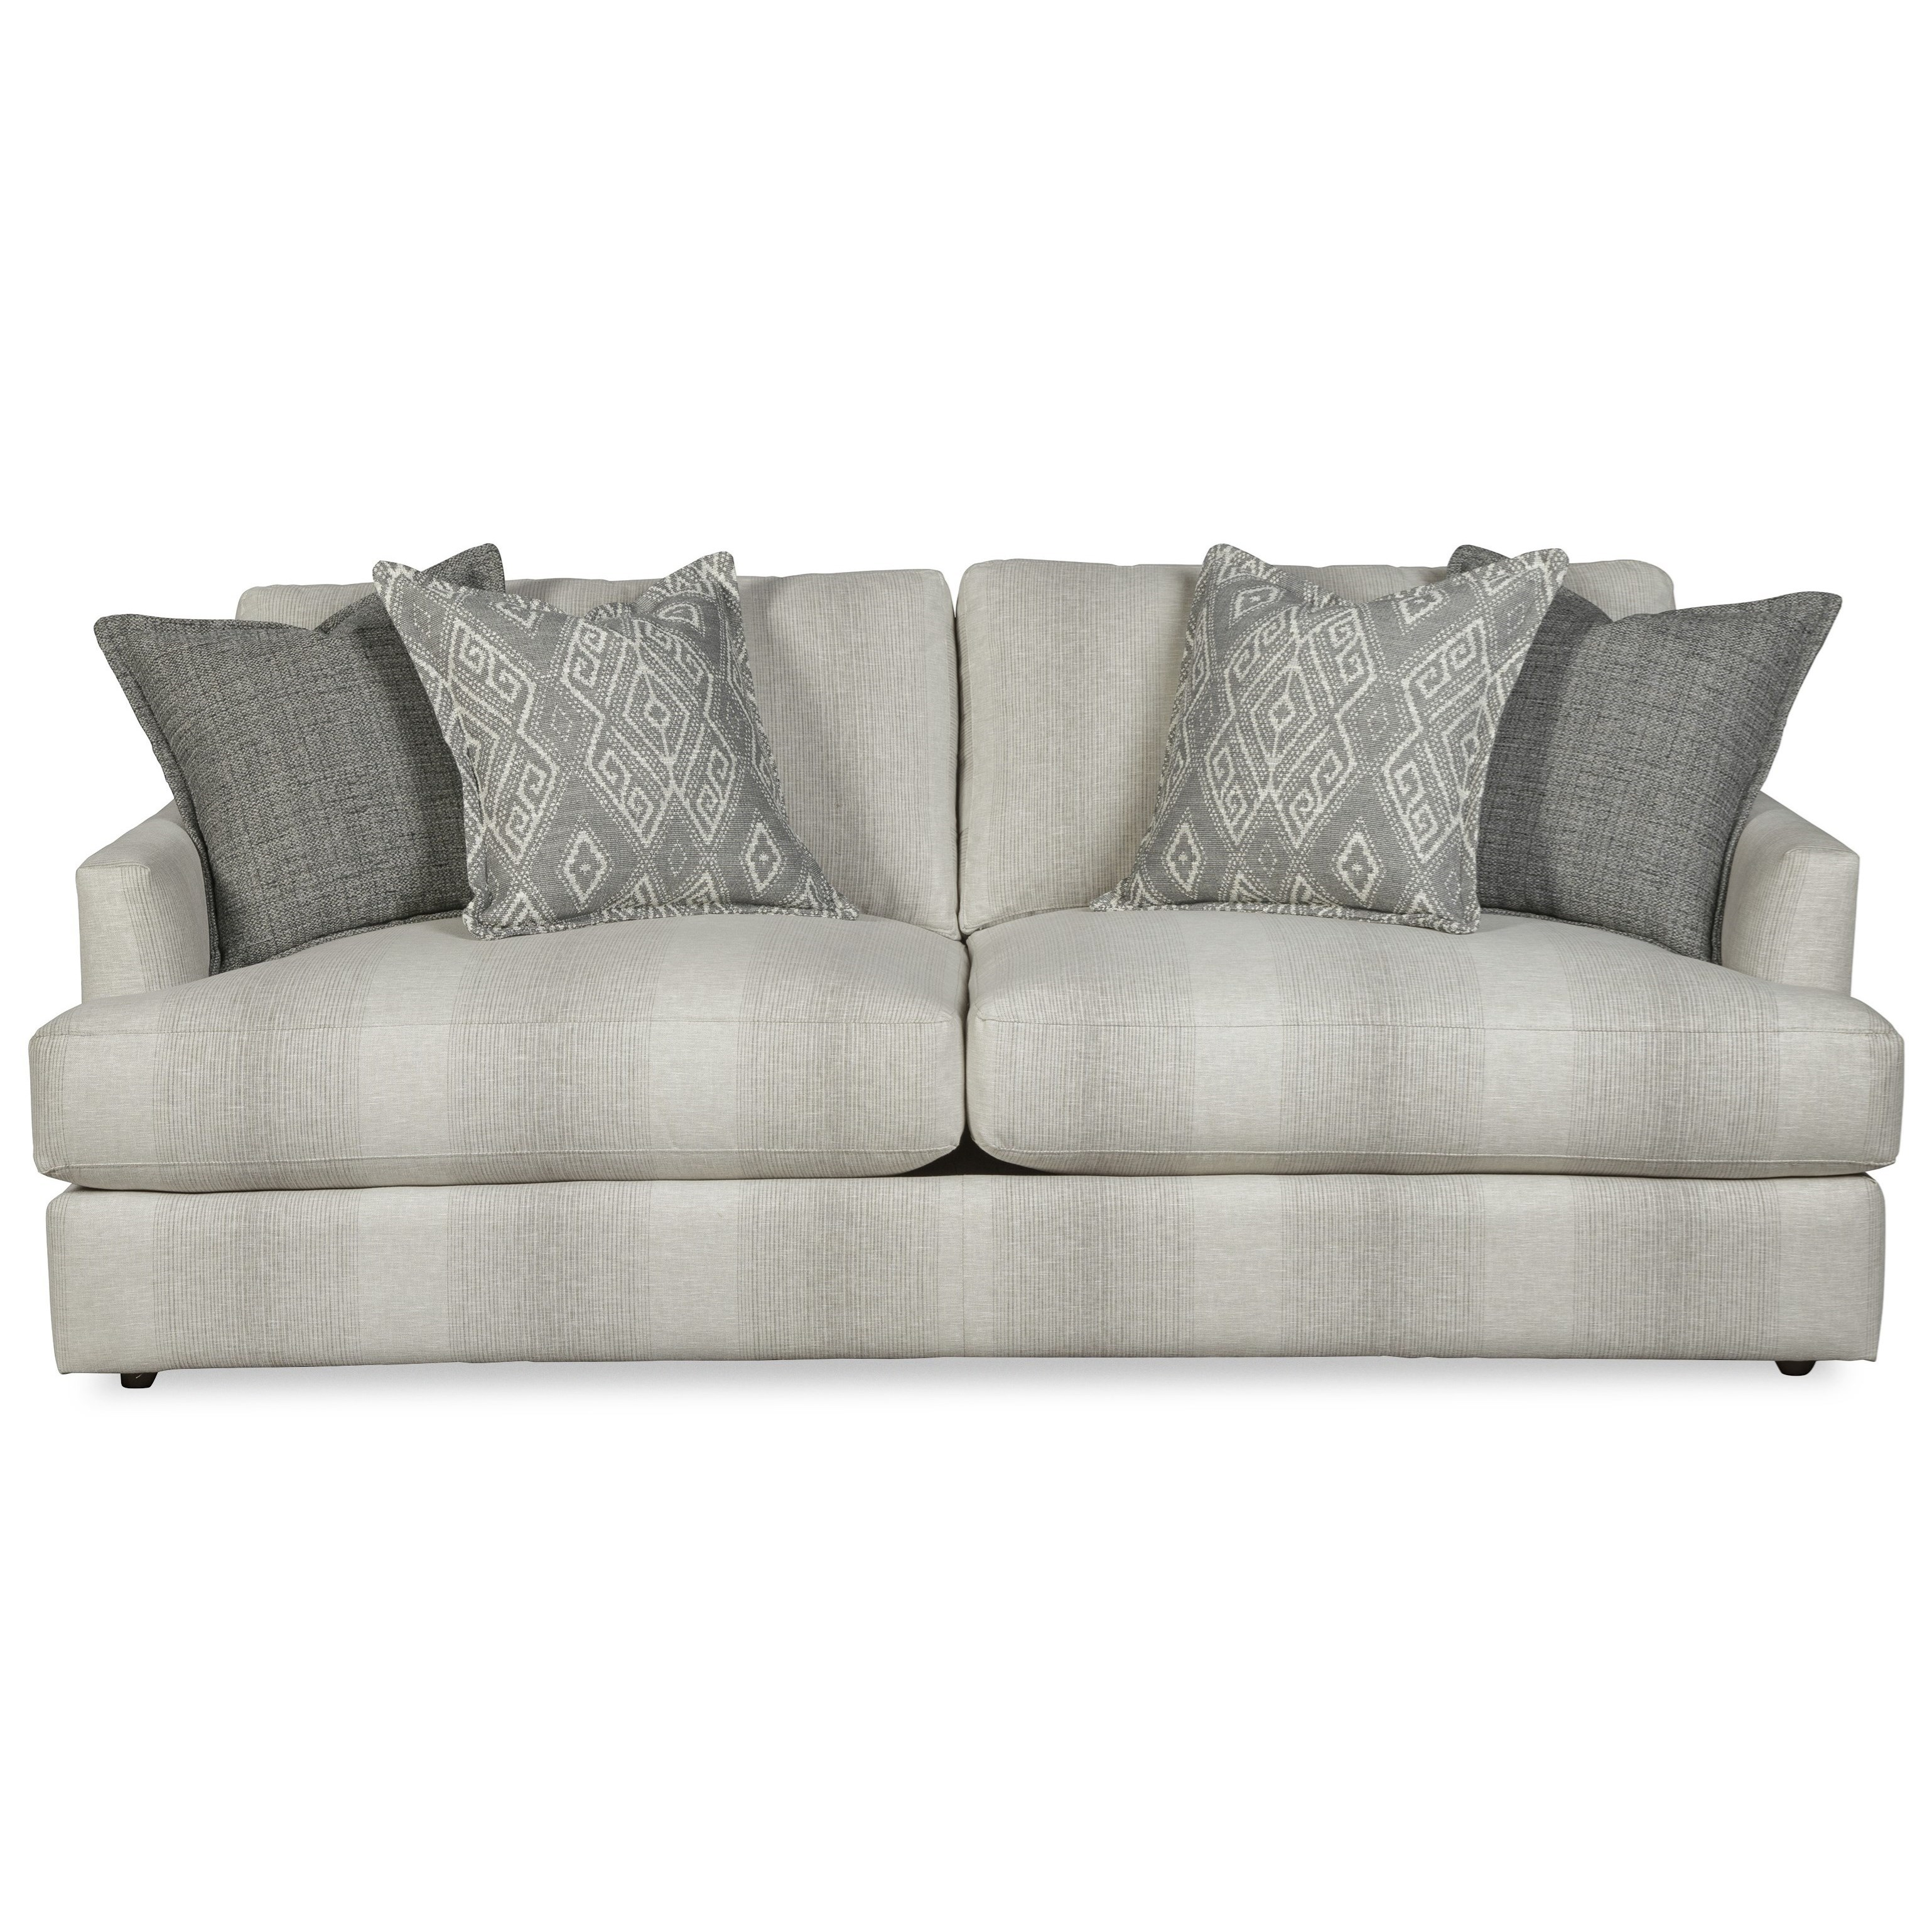 700150BD Sofa by Craftmaster at Bullard Furniture